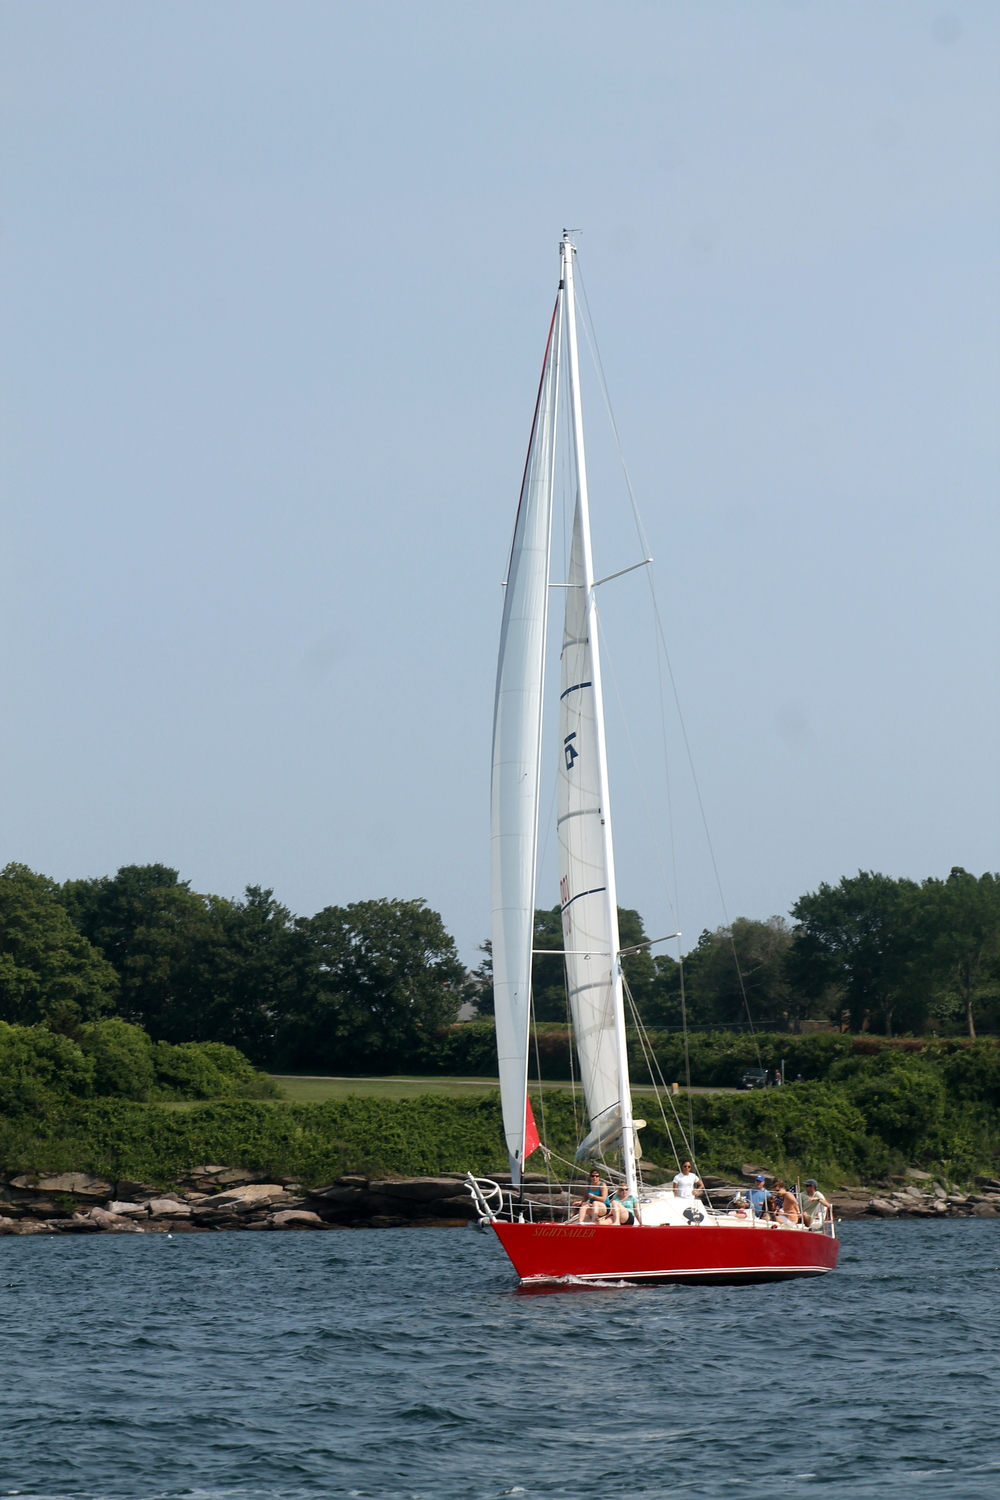 Charter a sailboat in Newport, Rhode Island. Image via Jessica Gordon Ryan